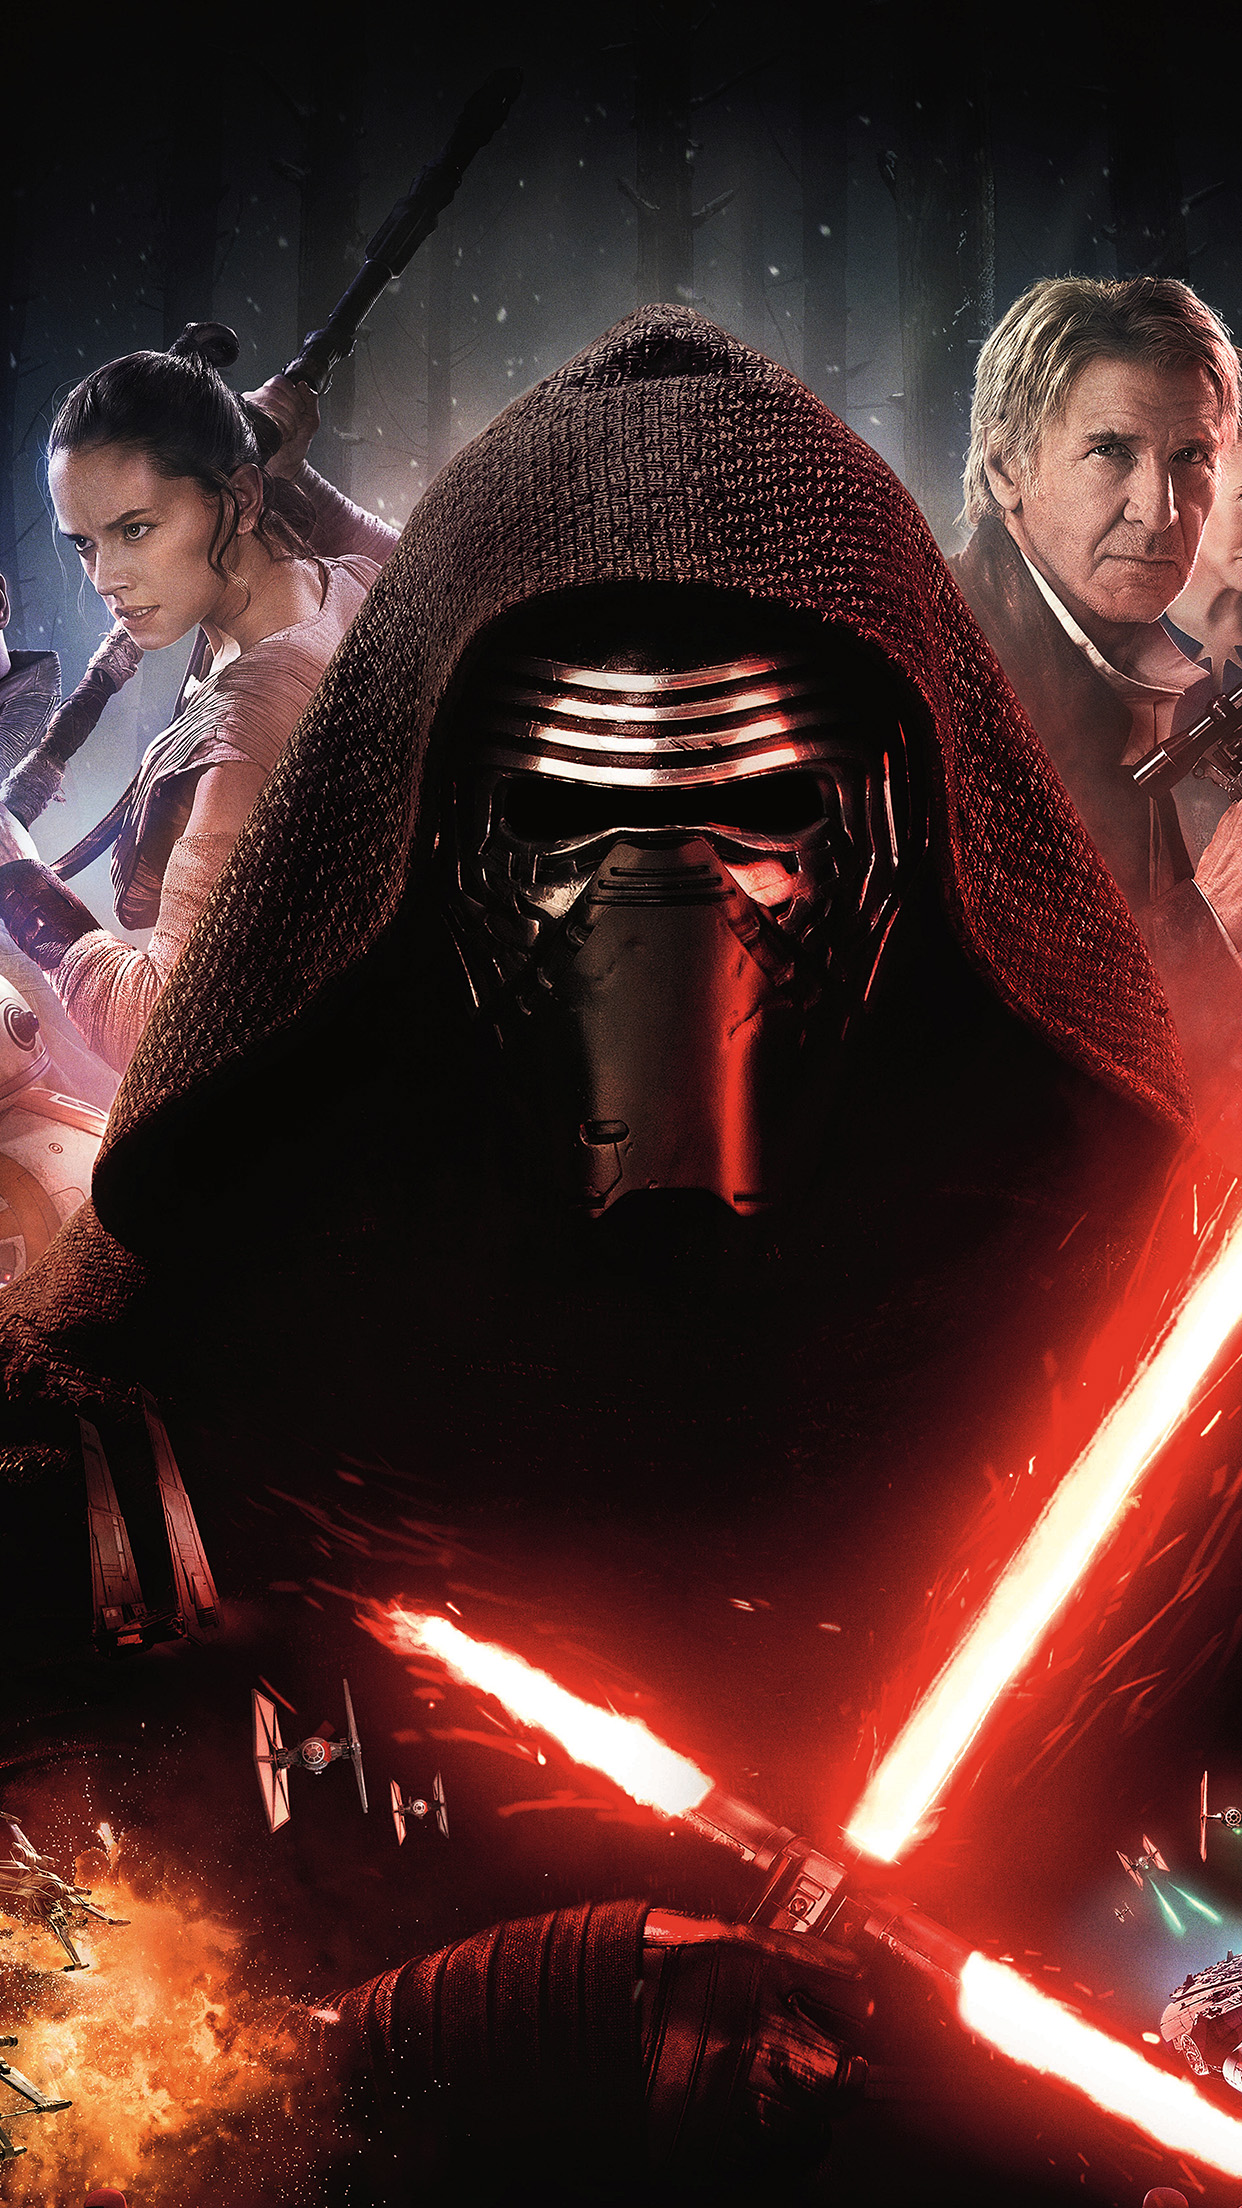 Star Wars Games and Apps | StarWars.com